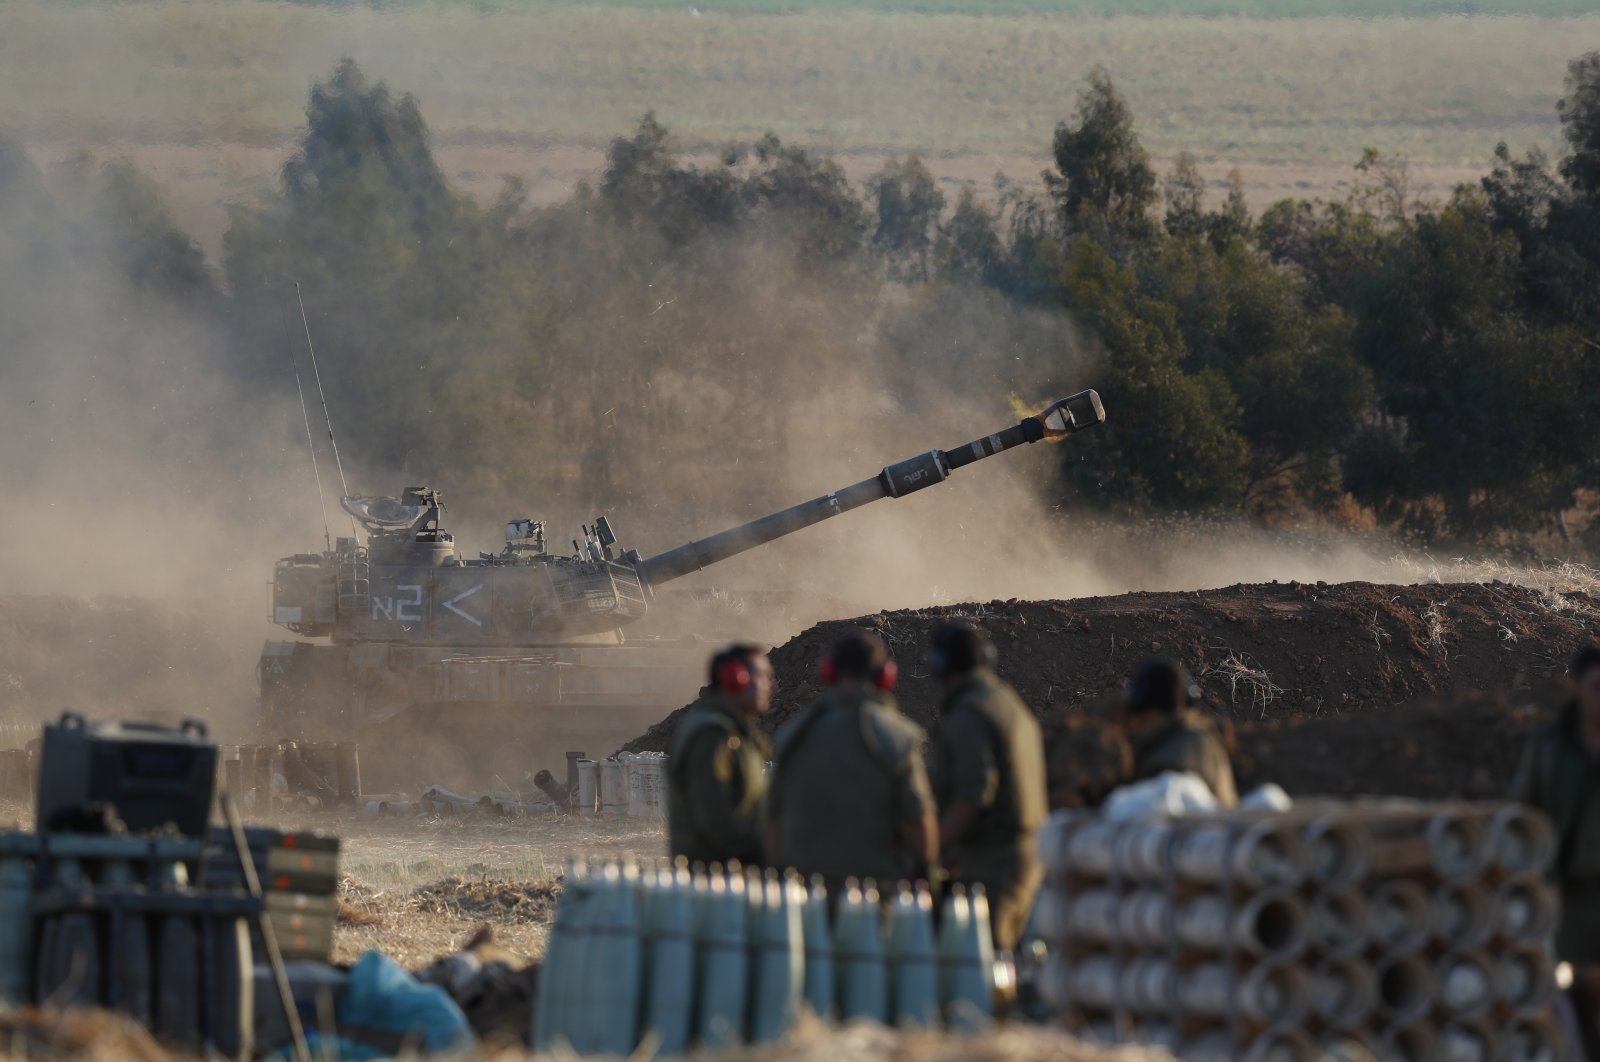 An Israeli artillery shells targets in the Gaza Strip as the escalation continues between the Israeli Army and Hamas forces at the Gaza Border, Israel, 13 May 2021. (EPA File Photo)